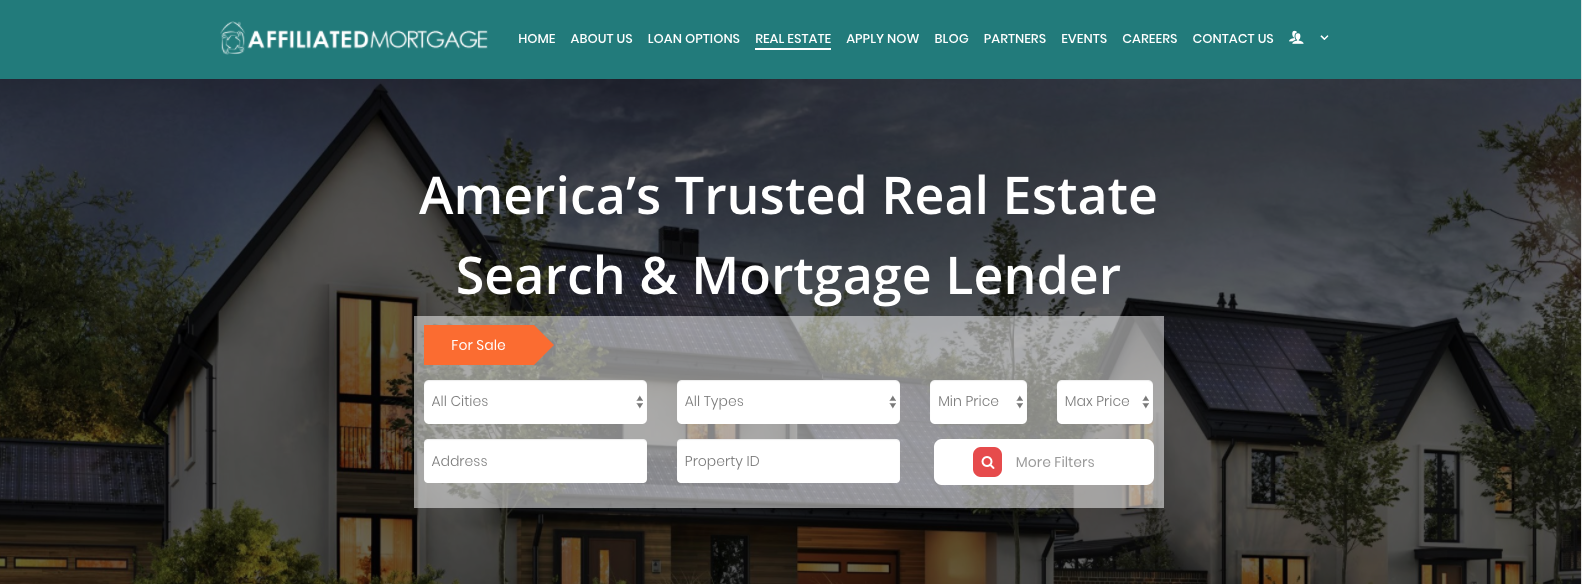 Affiliated Mortgage Launches Real Estate Search Tool into their New Website